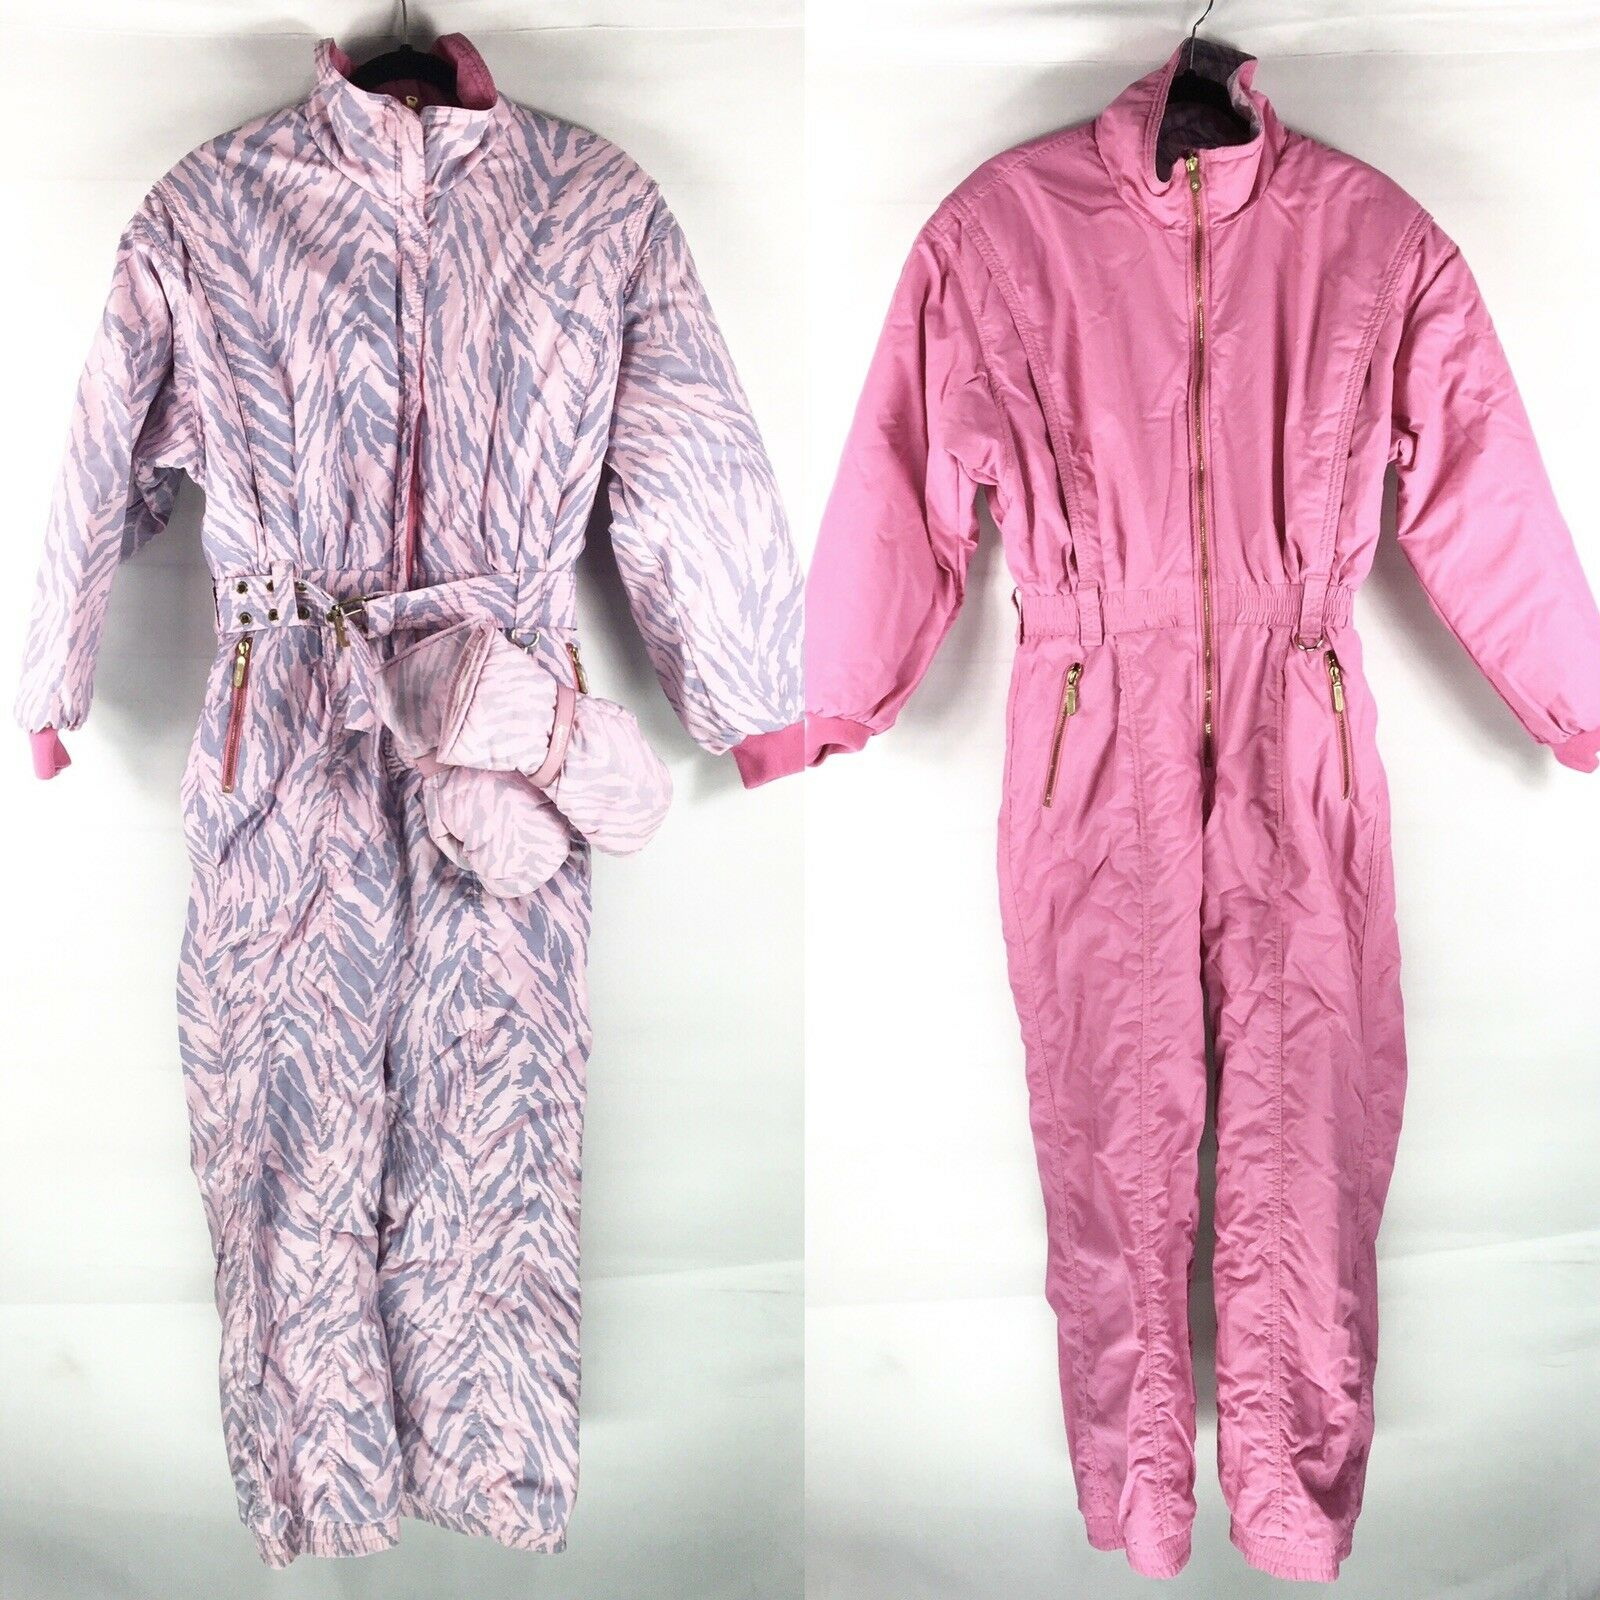 Vintage 80s KAELIN  Womens Ski Bib Snowsuit Sz 10 Pink Print One Piece Reversible  fast shipping and best service